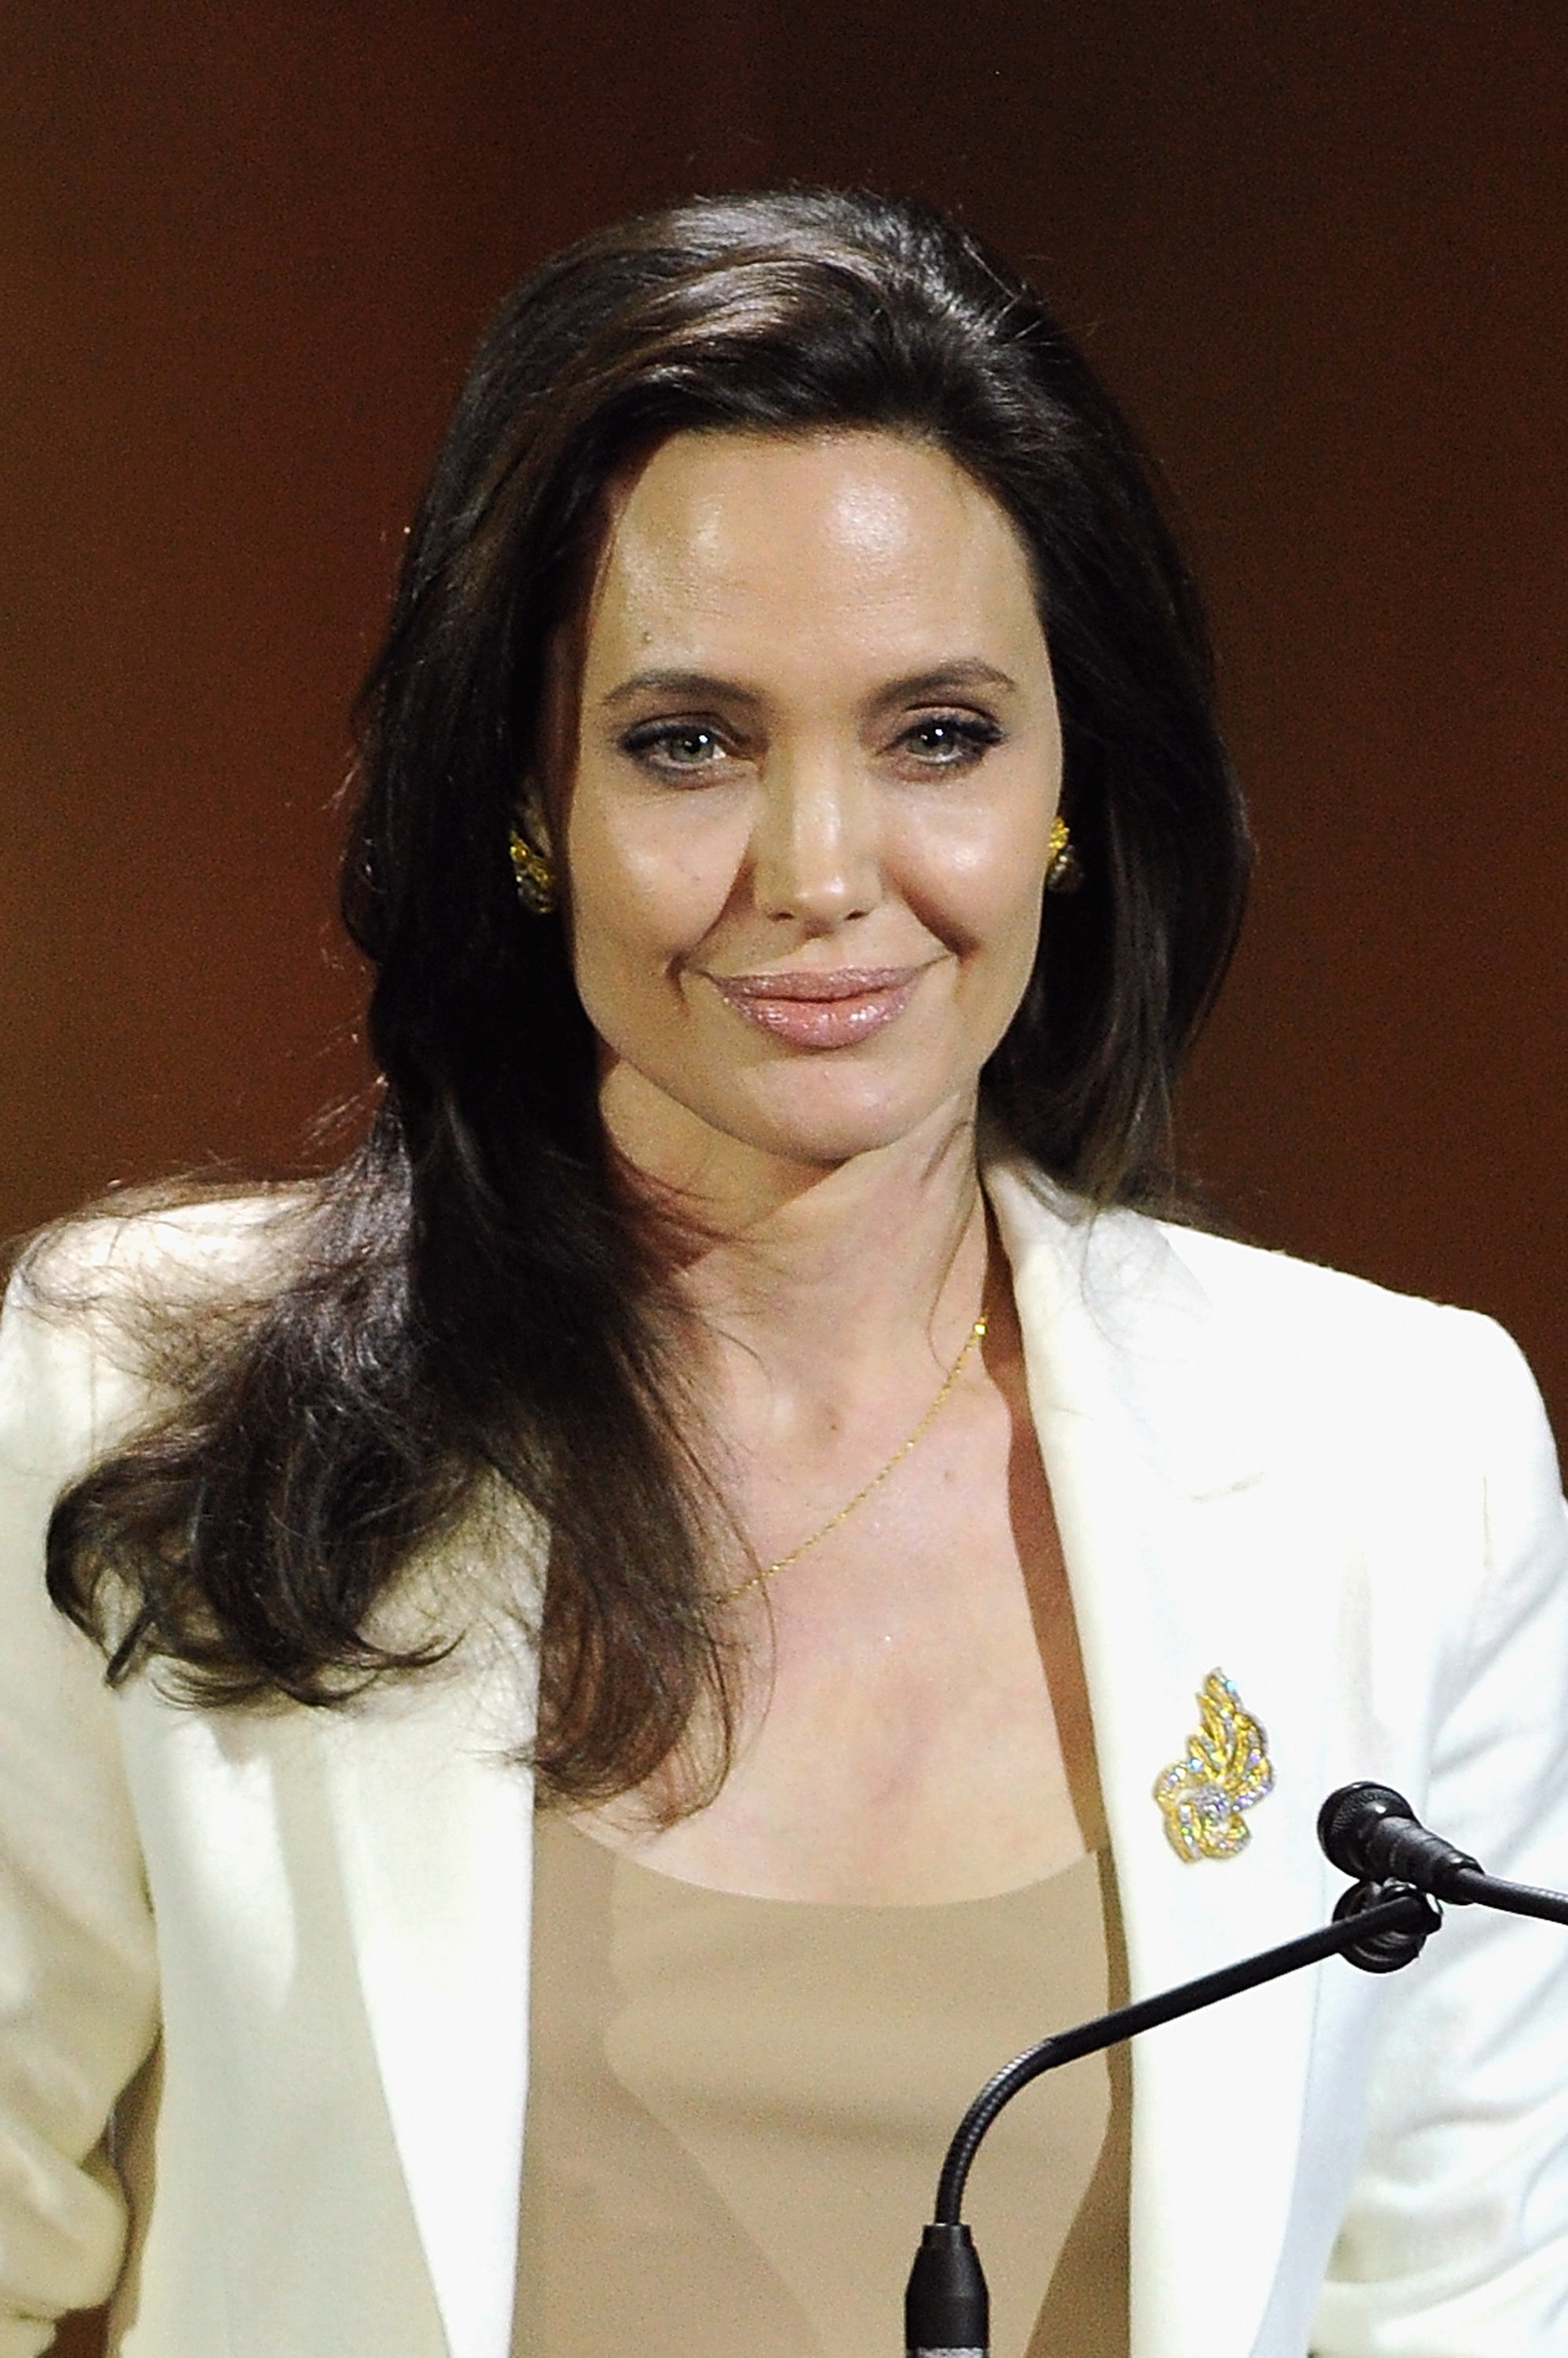 Angelina-Jolie-in-Laura-Basci-at-the-Women-In-World-Summit